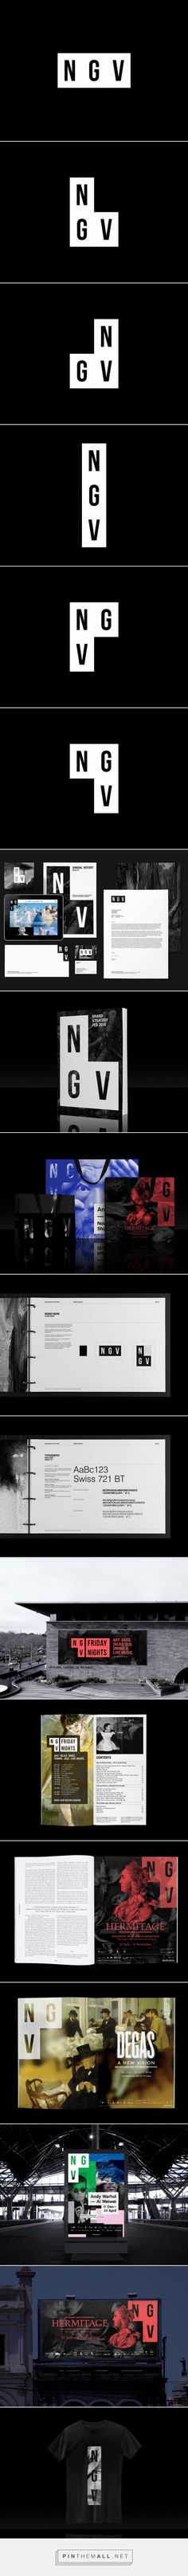 NGV Identity | 3 DEEP - created via https://pinthemall.net